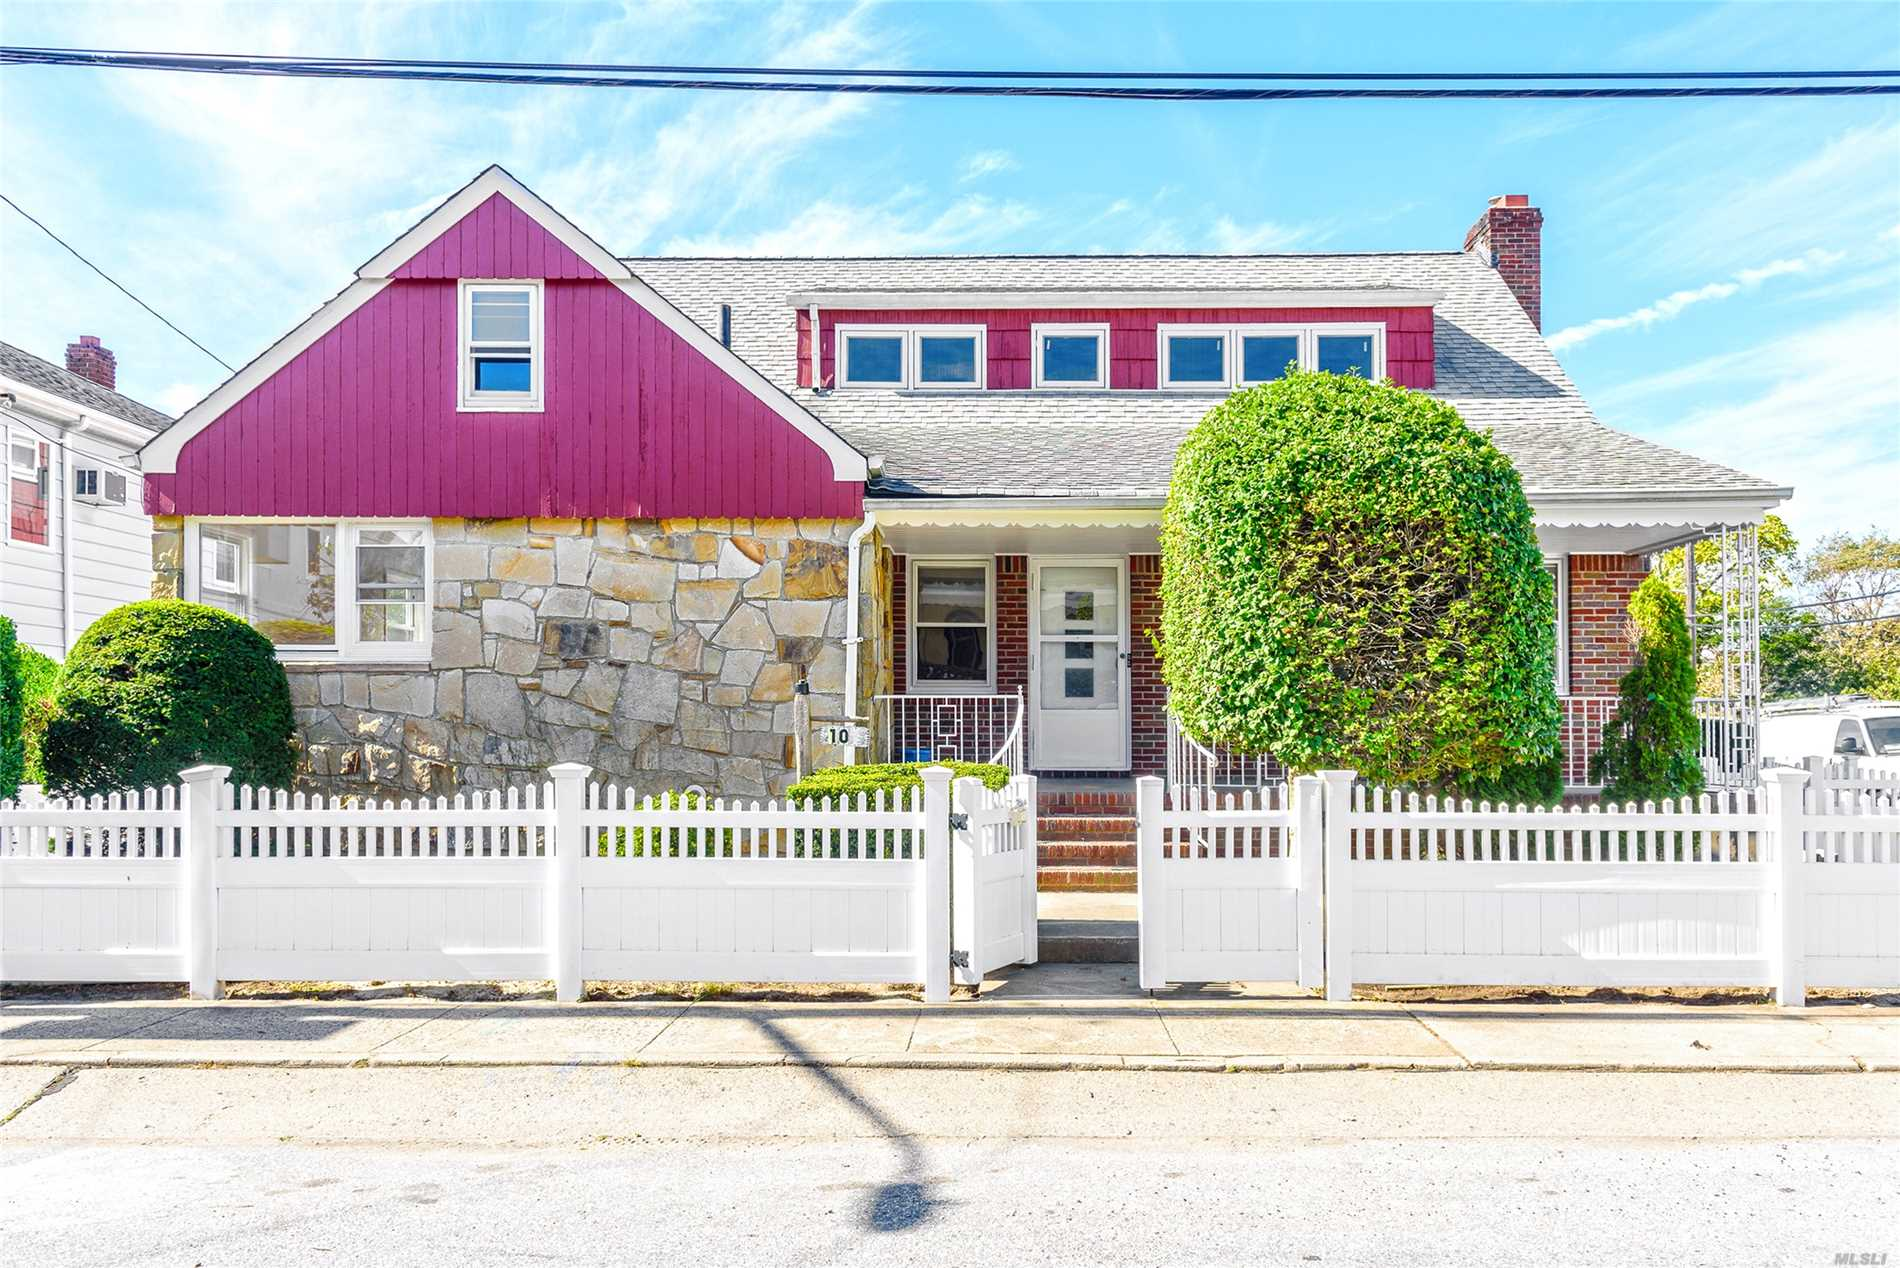 Beautifully Renovated Upstairs Apartment New Kitchen And Ss Appliances, Living Room W/ Terrace, Dinette , Bedroom, Bedroom, Bathroom, Washer/Dryer, Storage Area, Shared Use Of The Yard, One Parking Spot - Pets Considered W/Extra Security- Private Beach Community